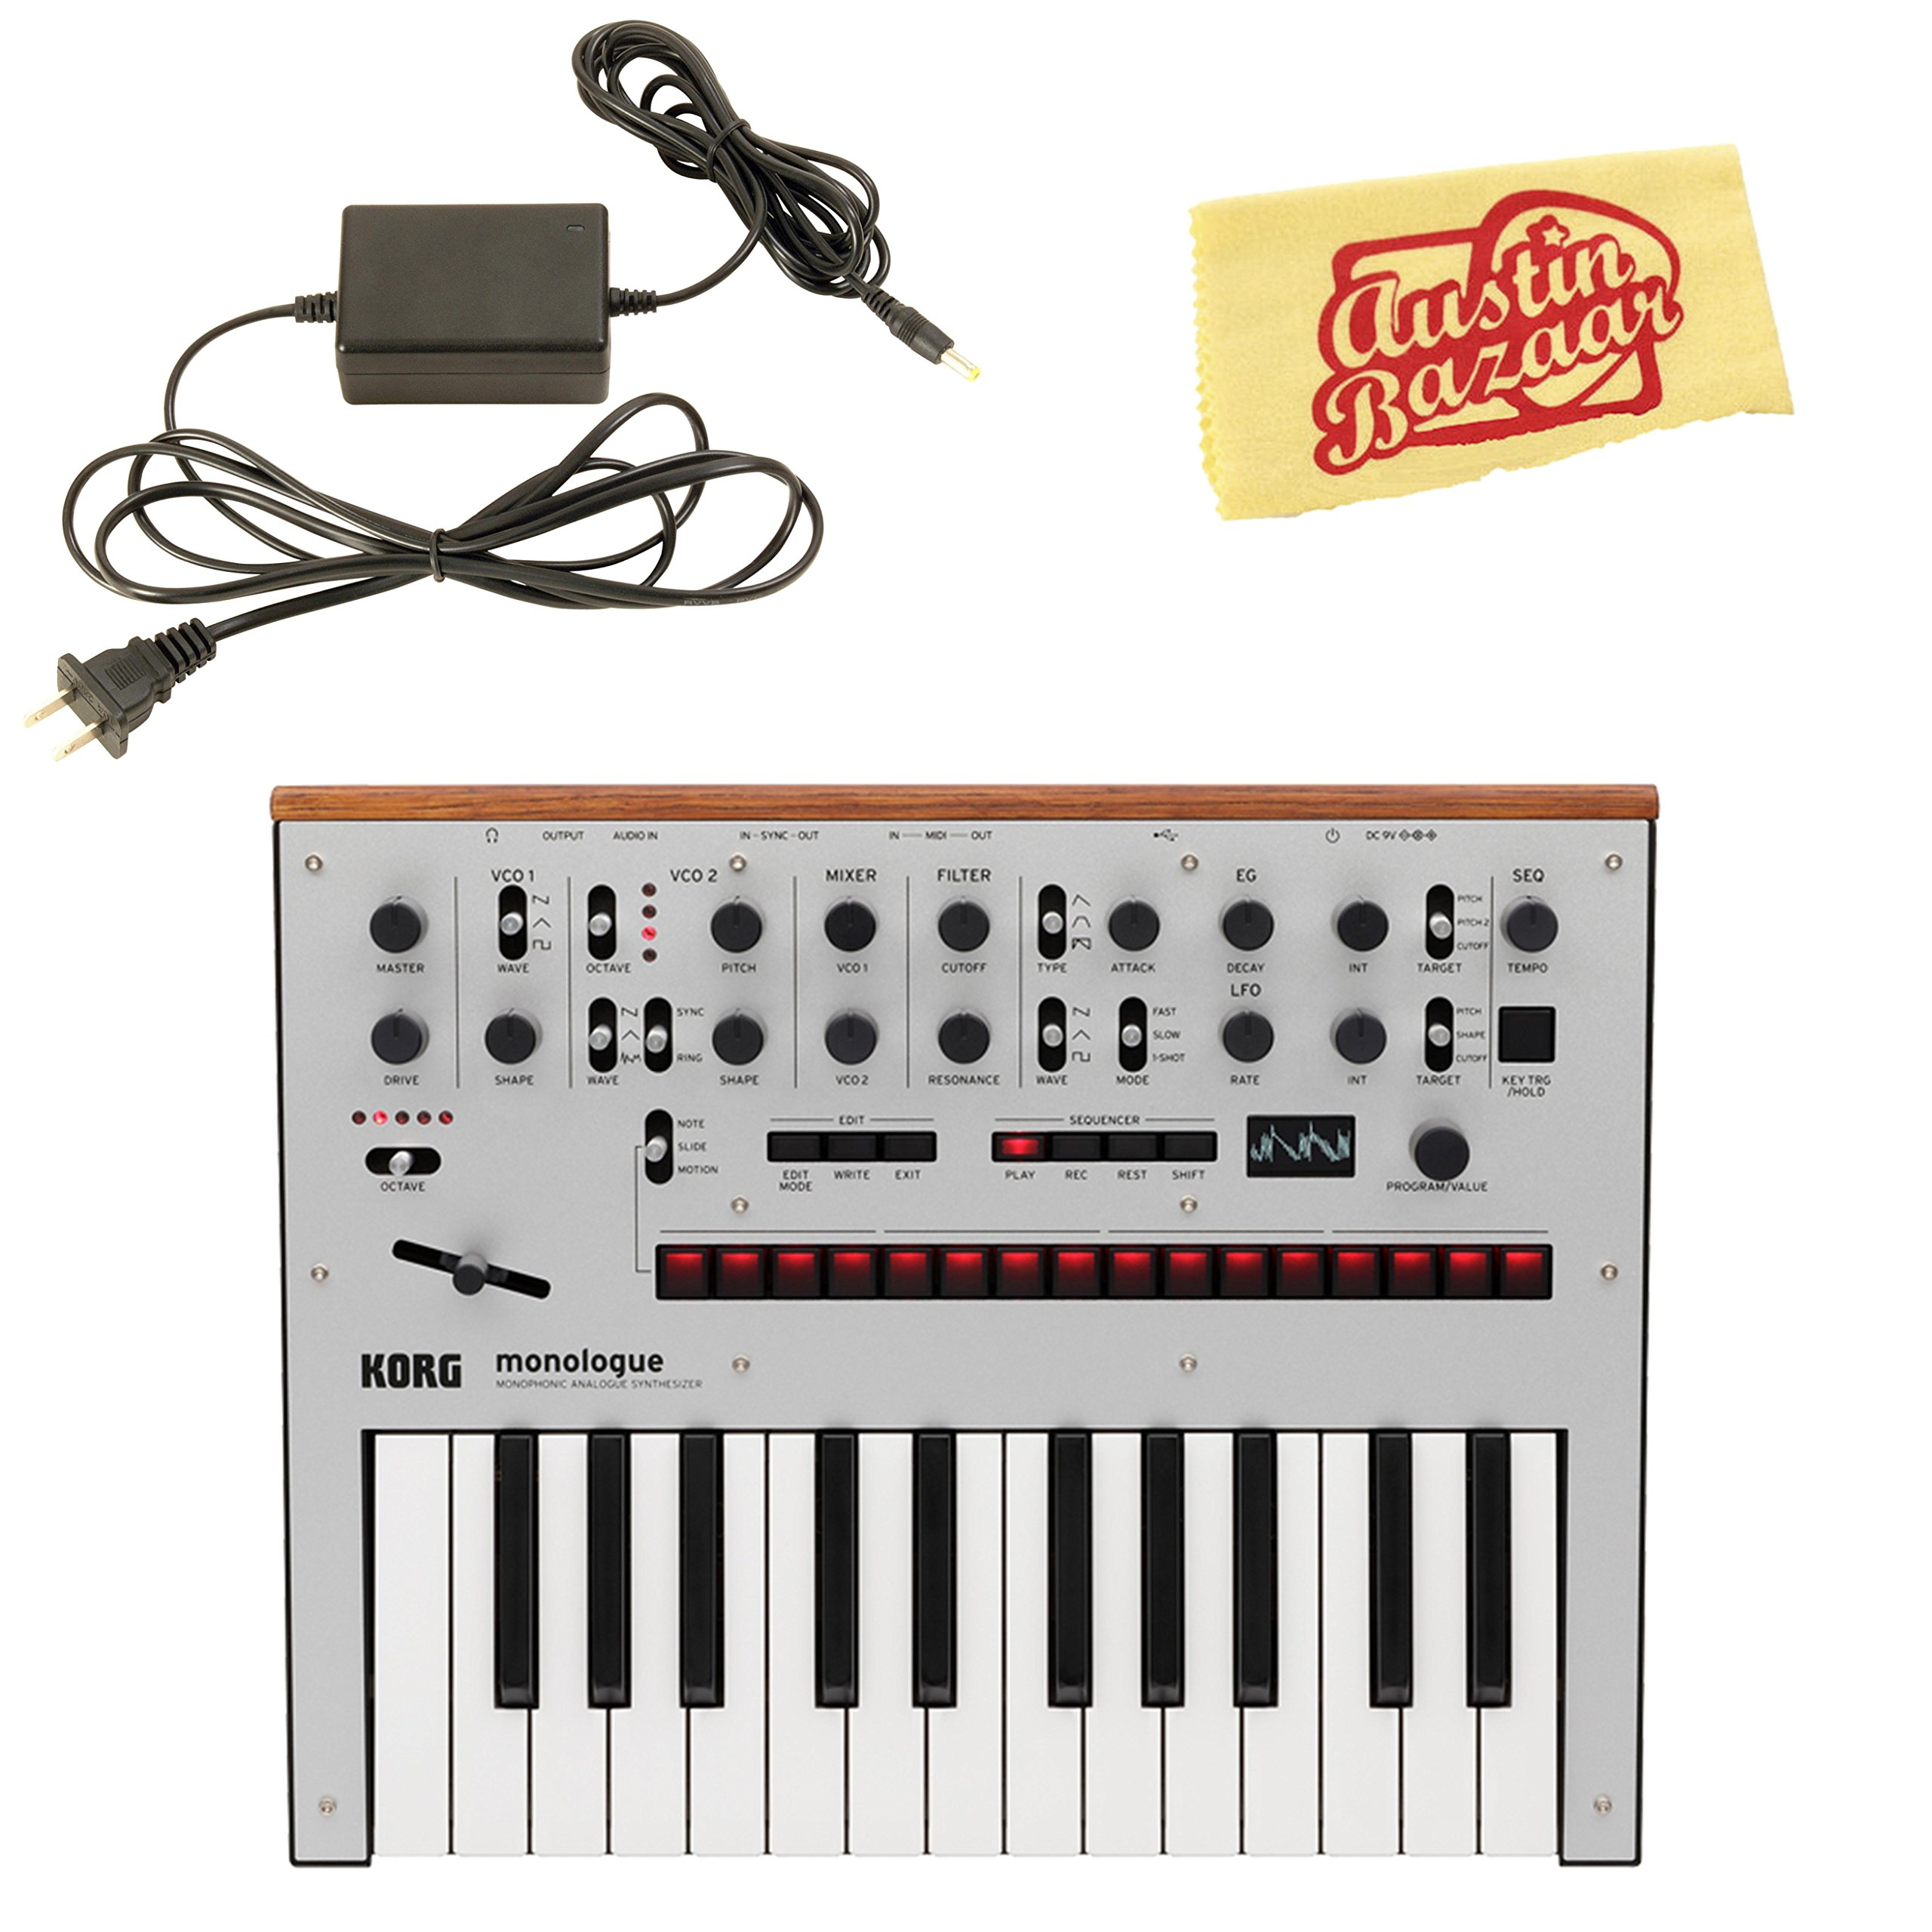 Korg Monologue Monophonic Analog Synthesizer - Silver Bundle with Power Supply and Austin Bazaar Polishing Cloth